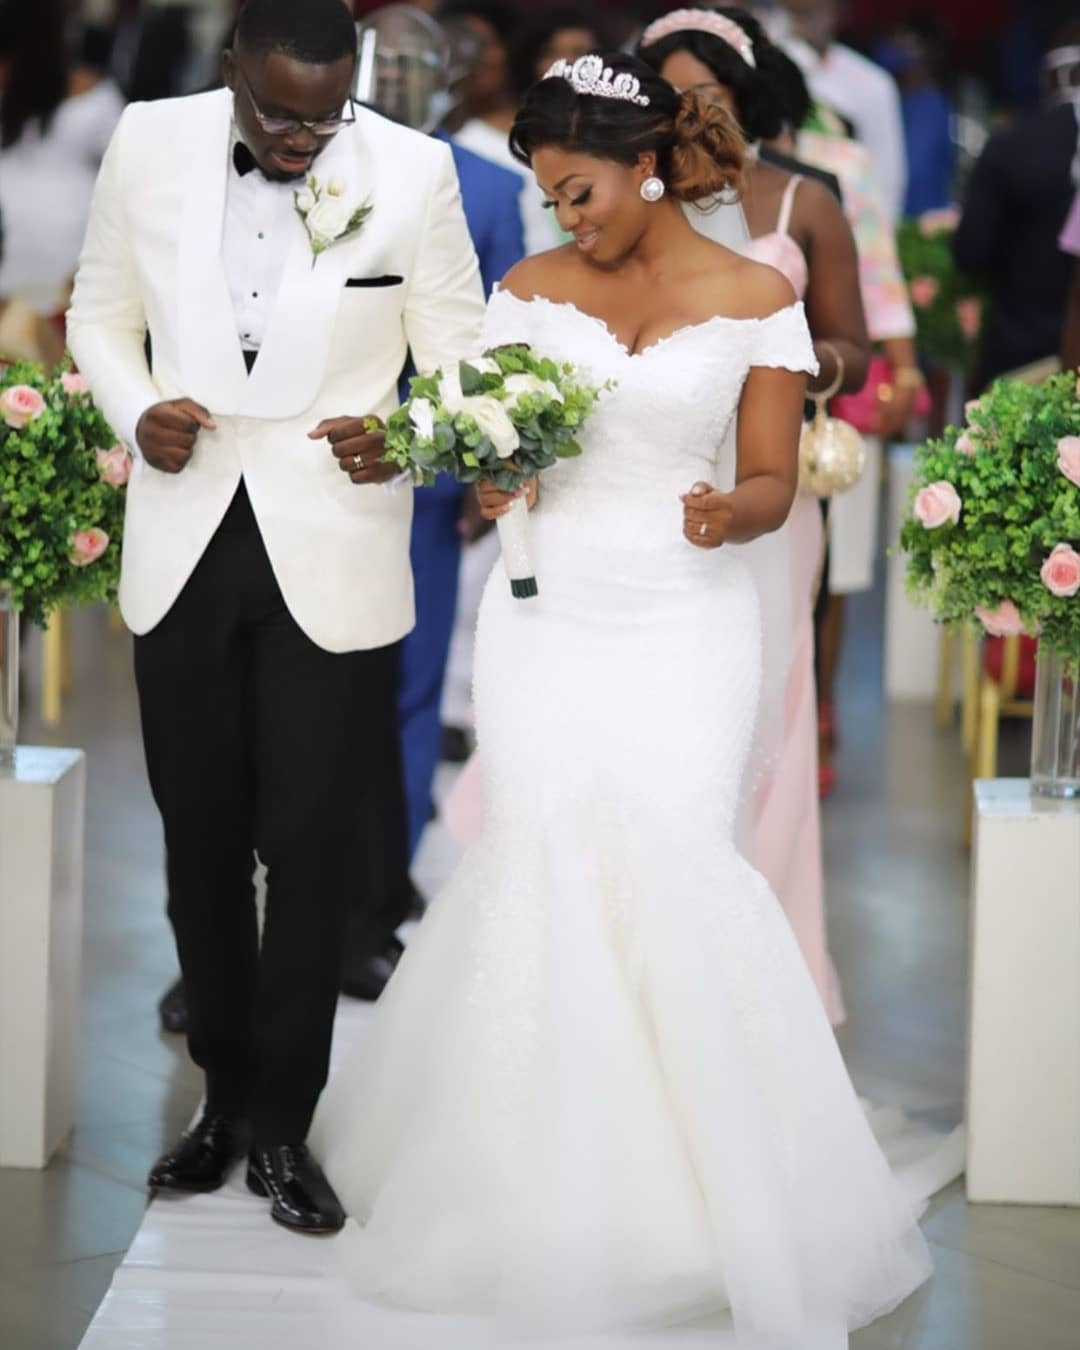 Enjoy This Beautiful at The #AnderClaude9 Wedding in Ghana